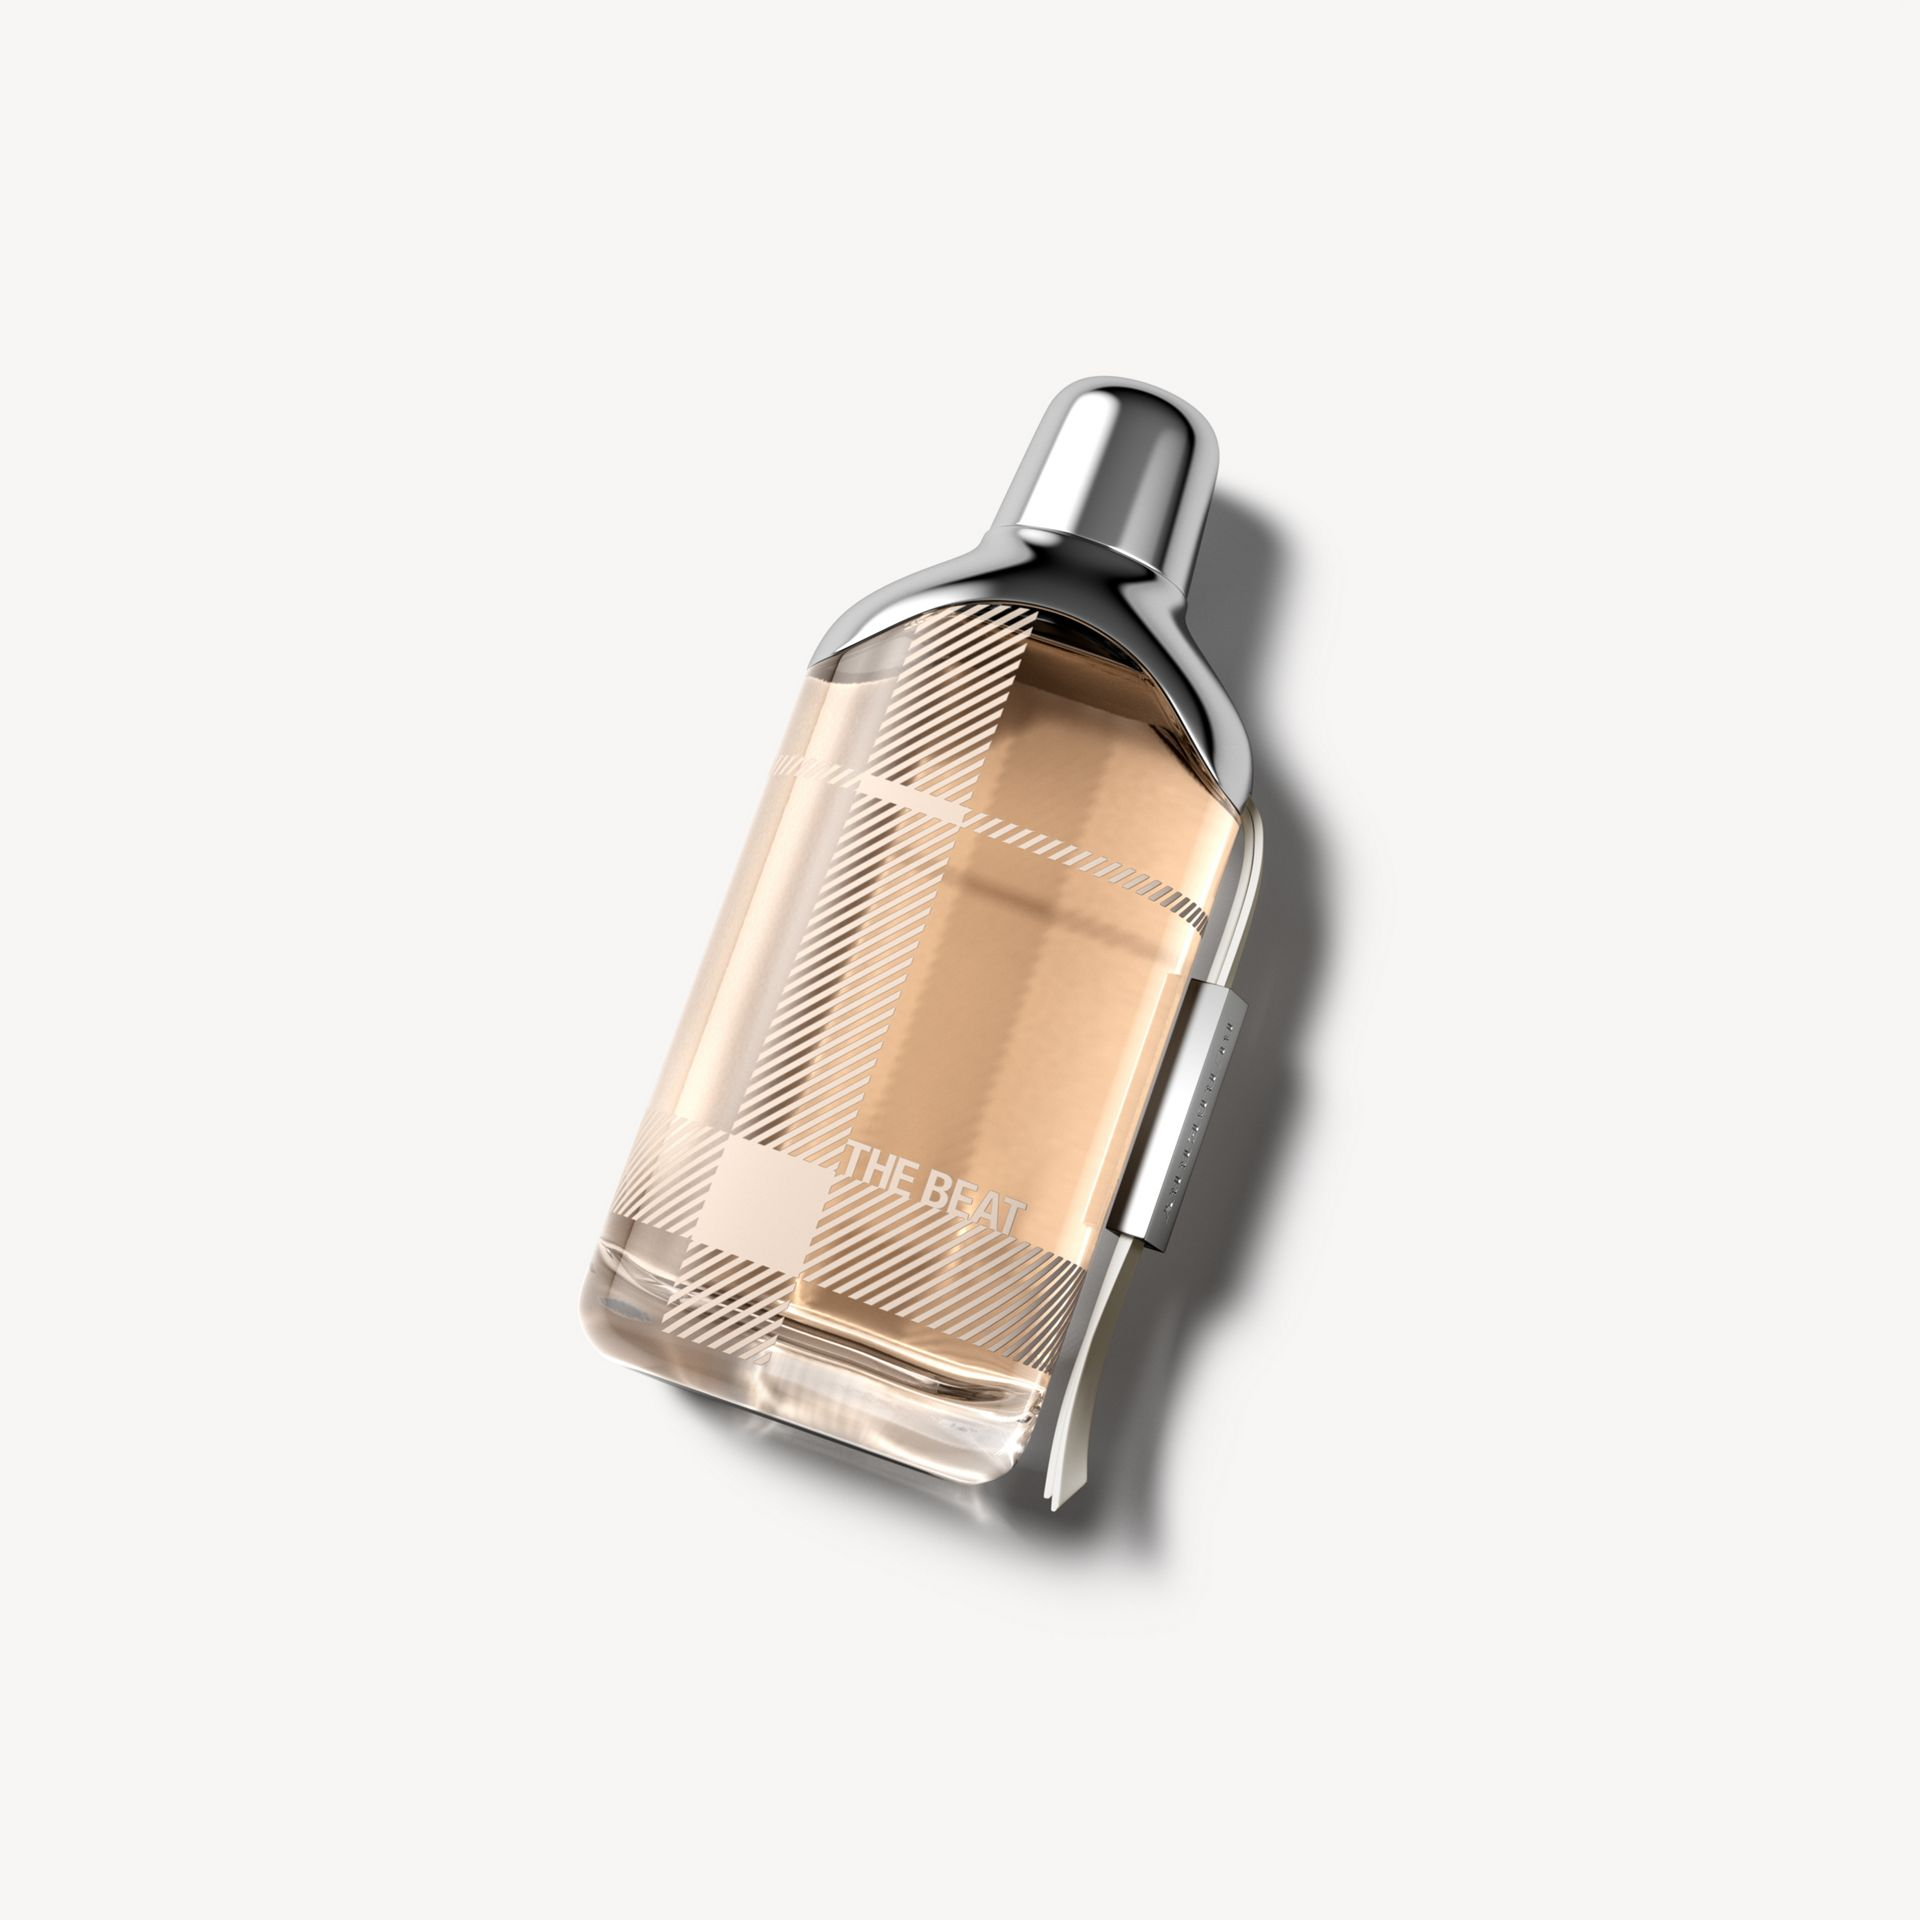 Burberry The Beat Eau de Parfum 75ml - Women | Burberry Hong Kong - gallery image 1